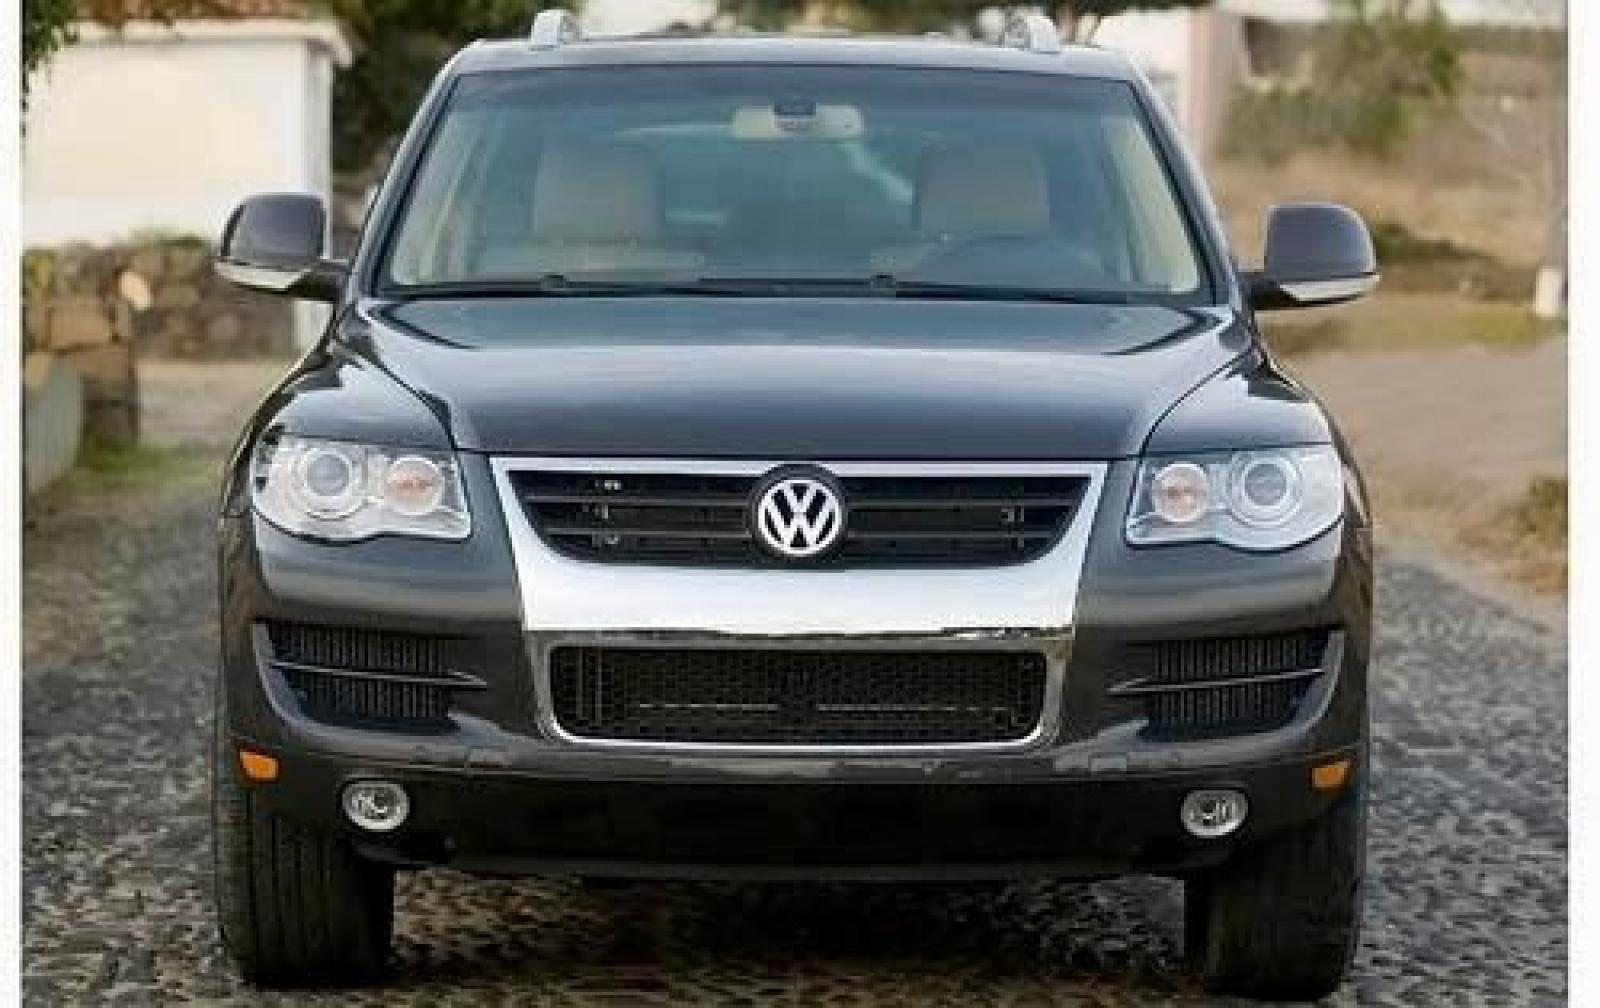 2010 volkswagen touareg information and photos zombiedrive. Black Bedroom Furniture Sets. Home Design Ideas